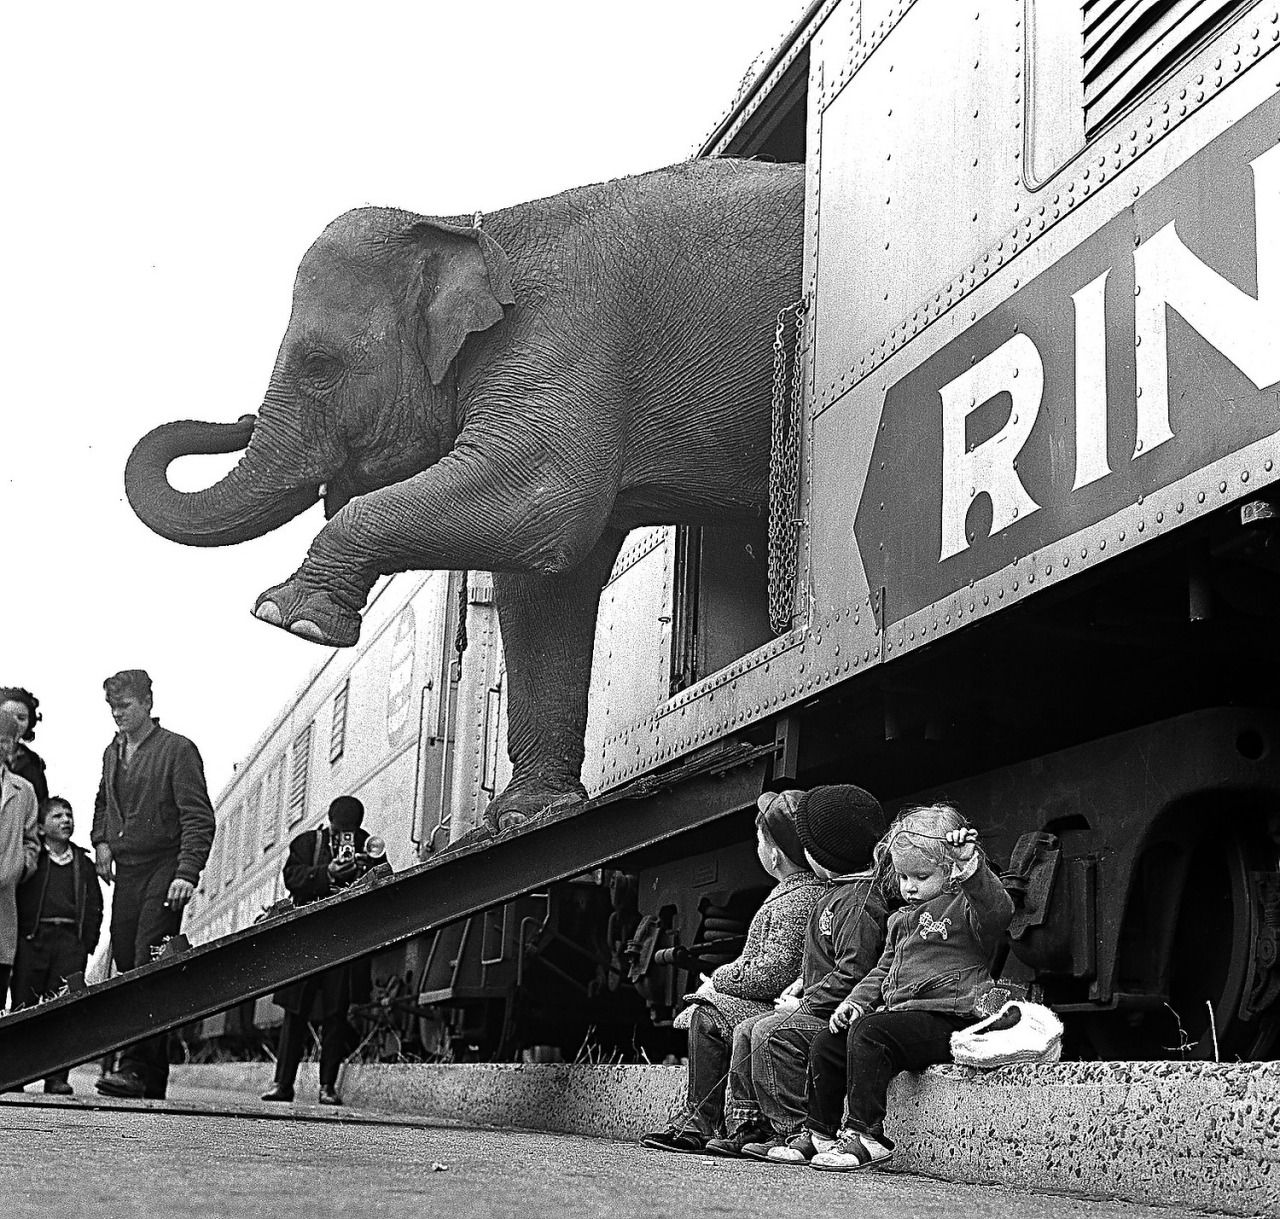 A Ringling Brothers Circus elephant walks out of a train car as young children watch in the Bronx railroad yard in New York City (April 1, 1963).